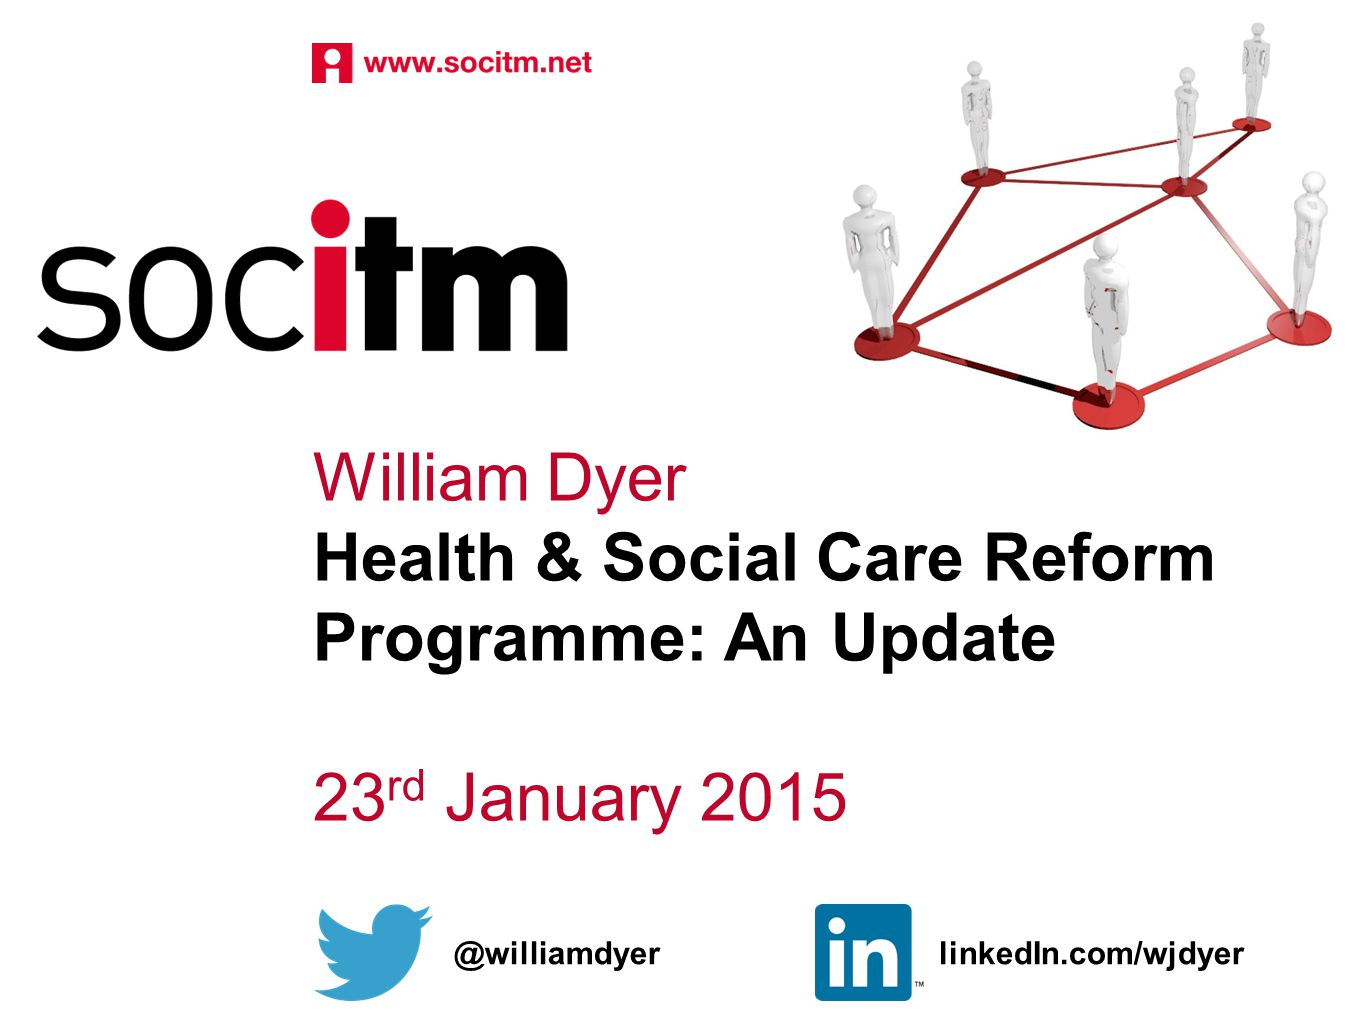 William Dyer Health & Social Care Reform Programme: An Update 23 rd January 2015 @williamdyerlinkedIn.com/wjdyer